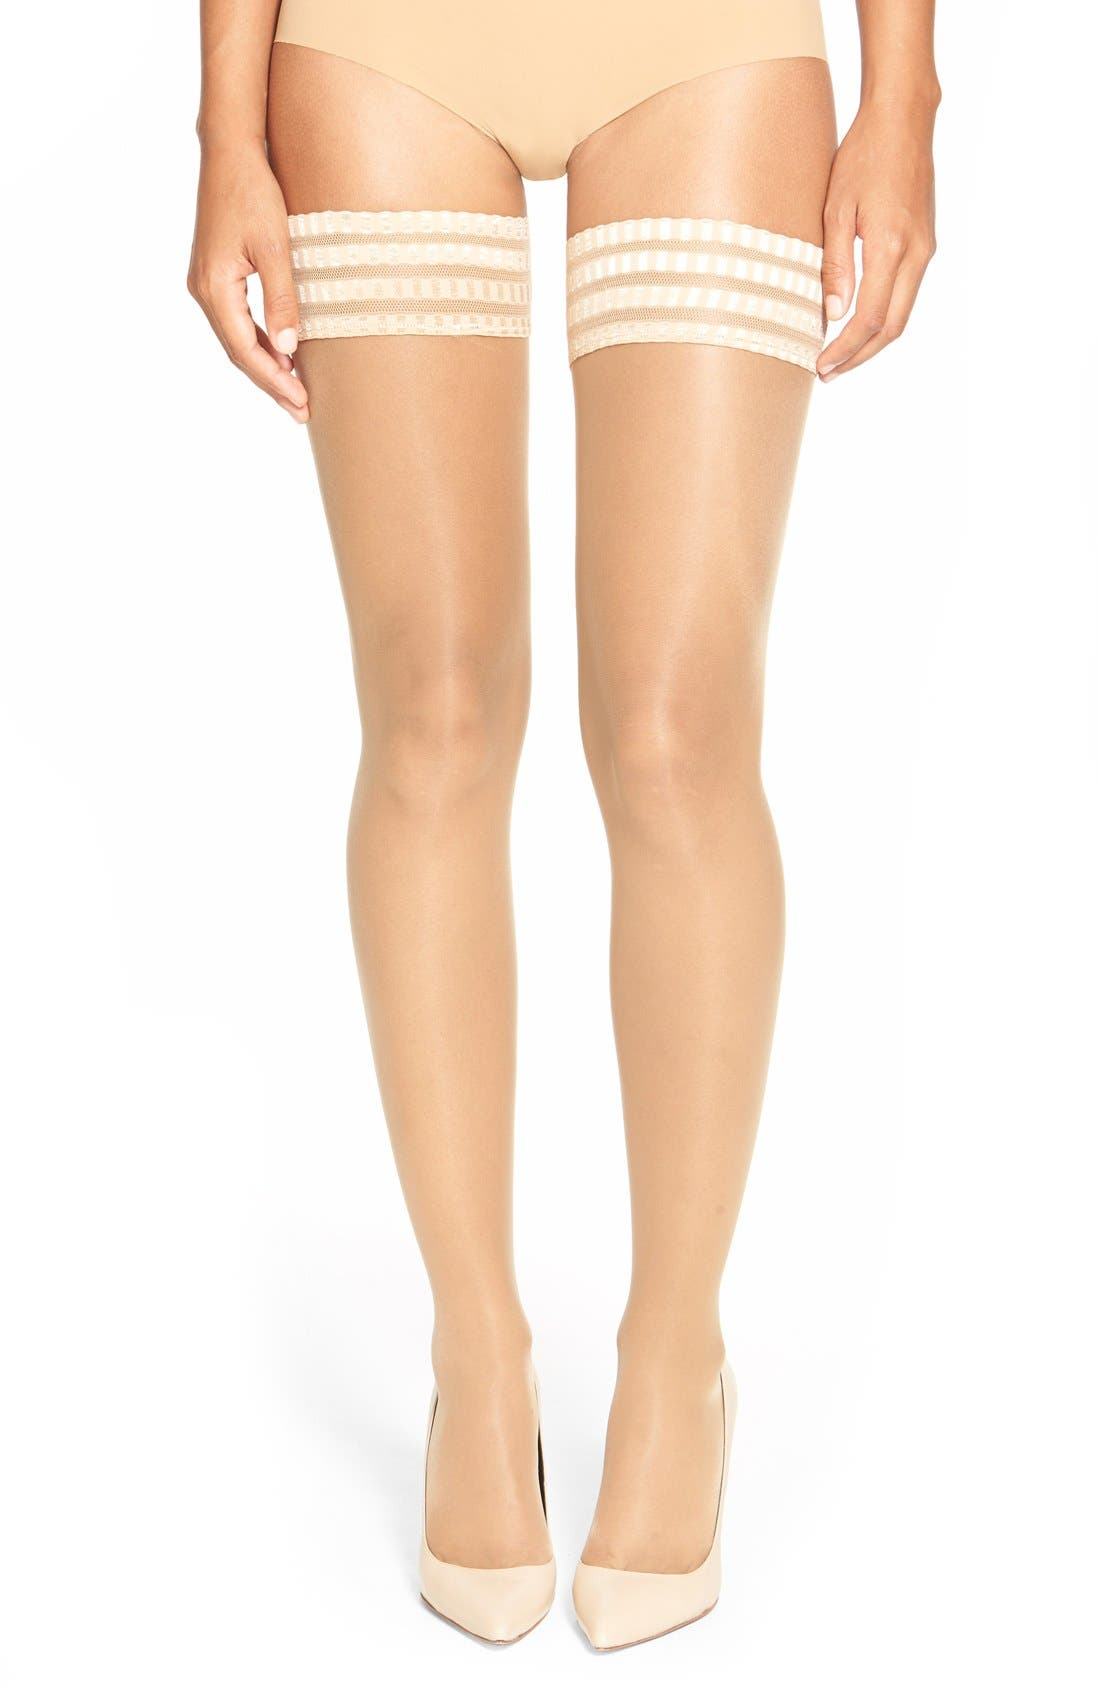 'Pure Matt 20' Stay-Up Stockings,                         Main,                         color, Golden